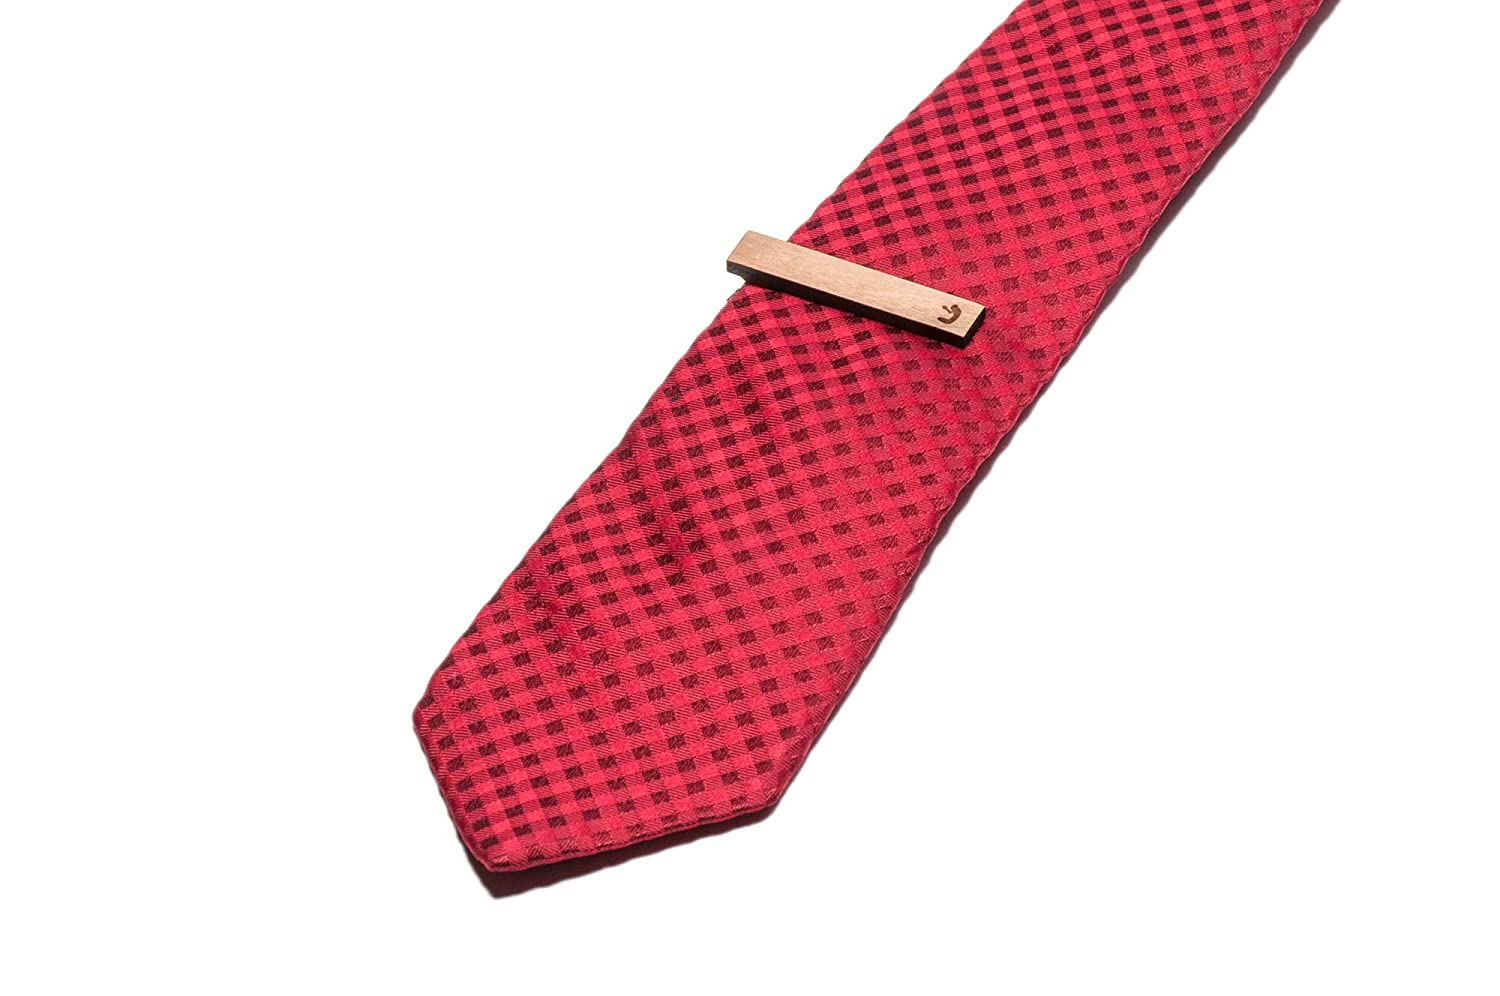 Cherry Wood Tie Bar Engraved in The USA Wooden Accessories Company Wooden Tie Clips with Laser Engraved Beggar Design